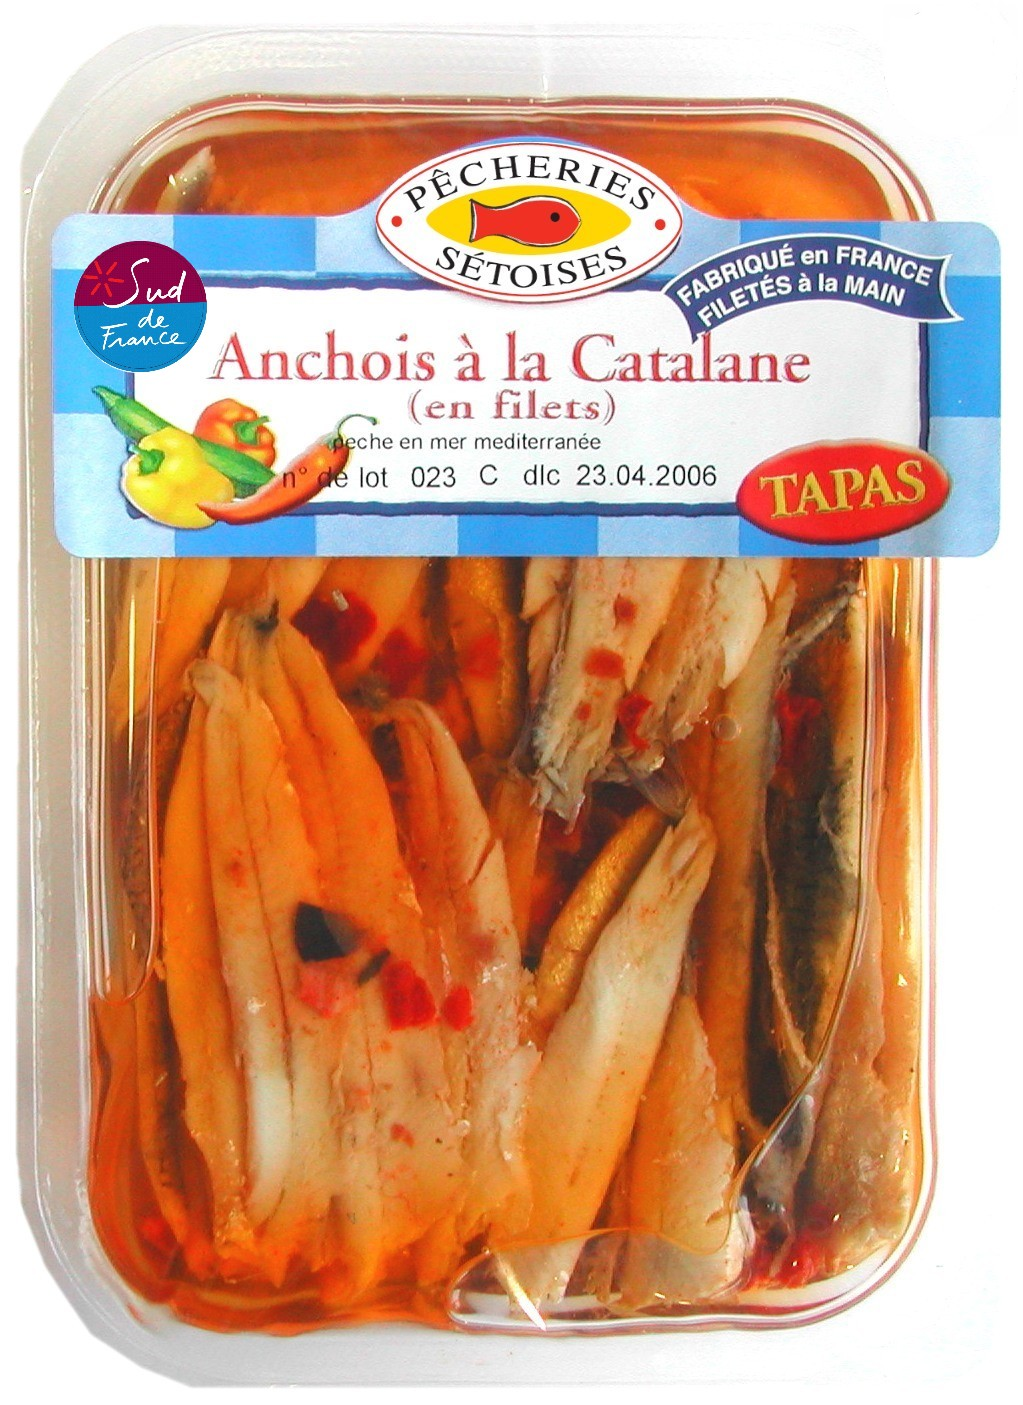 Anchois à la Catalane, Pêcheries Sétoises (200 g)